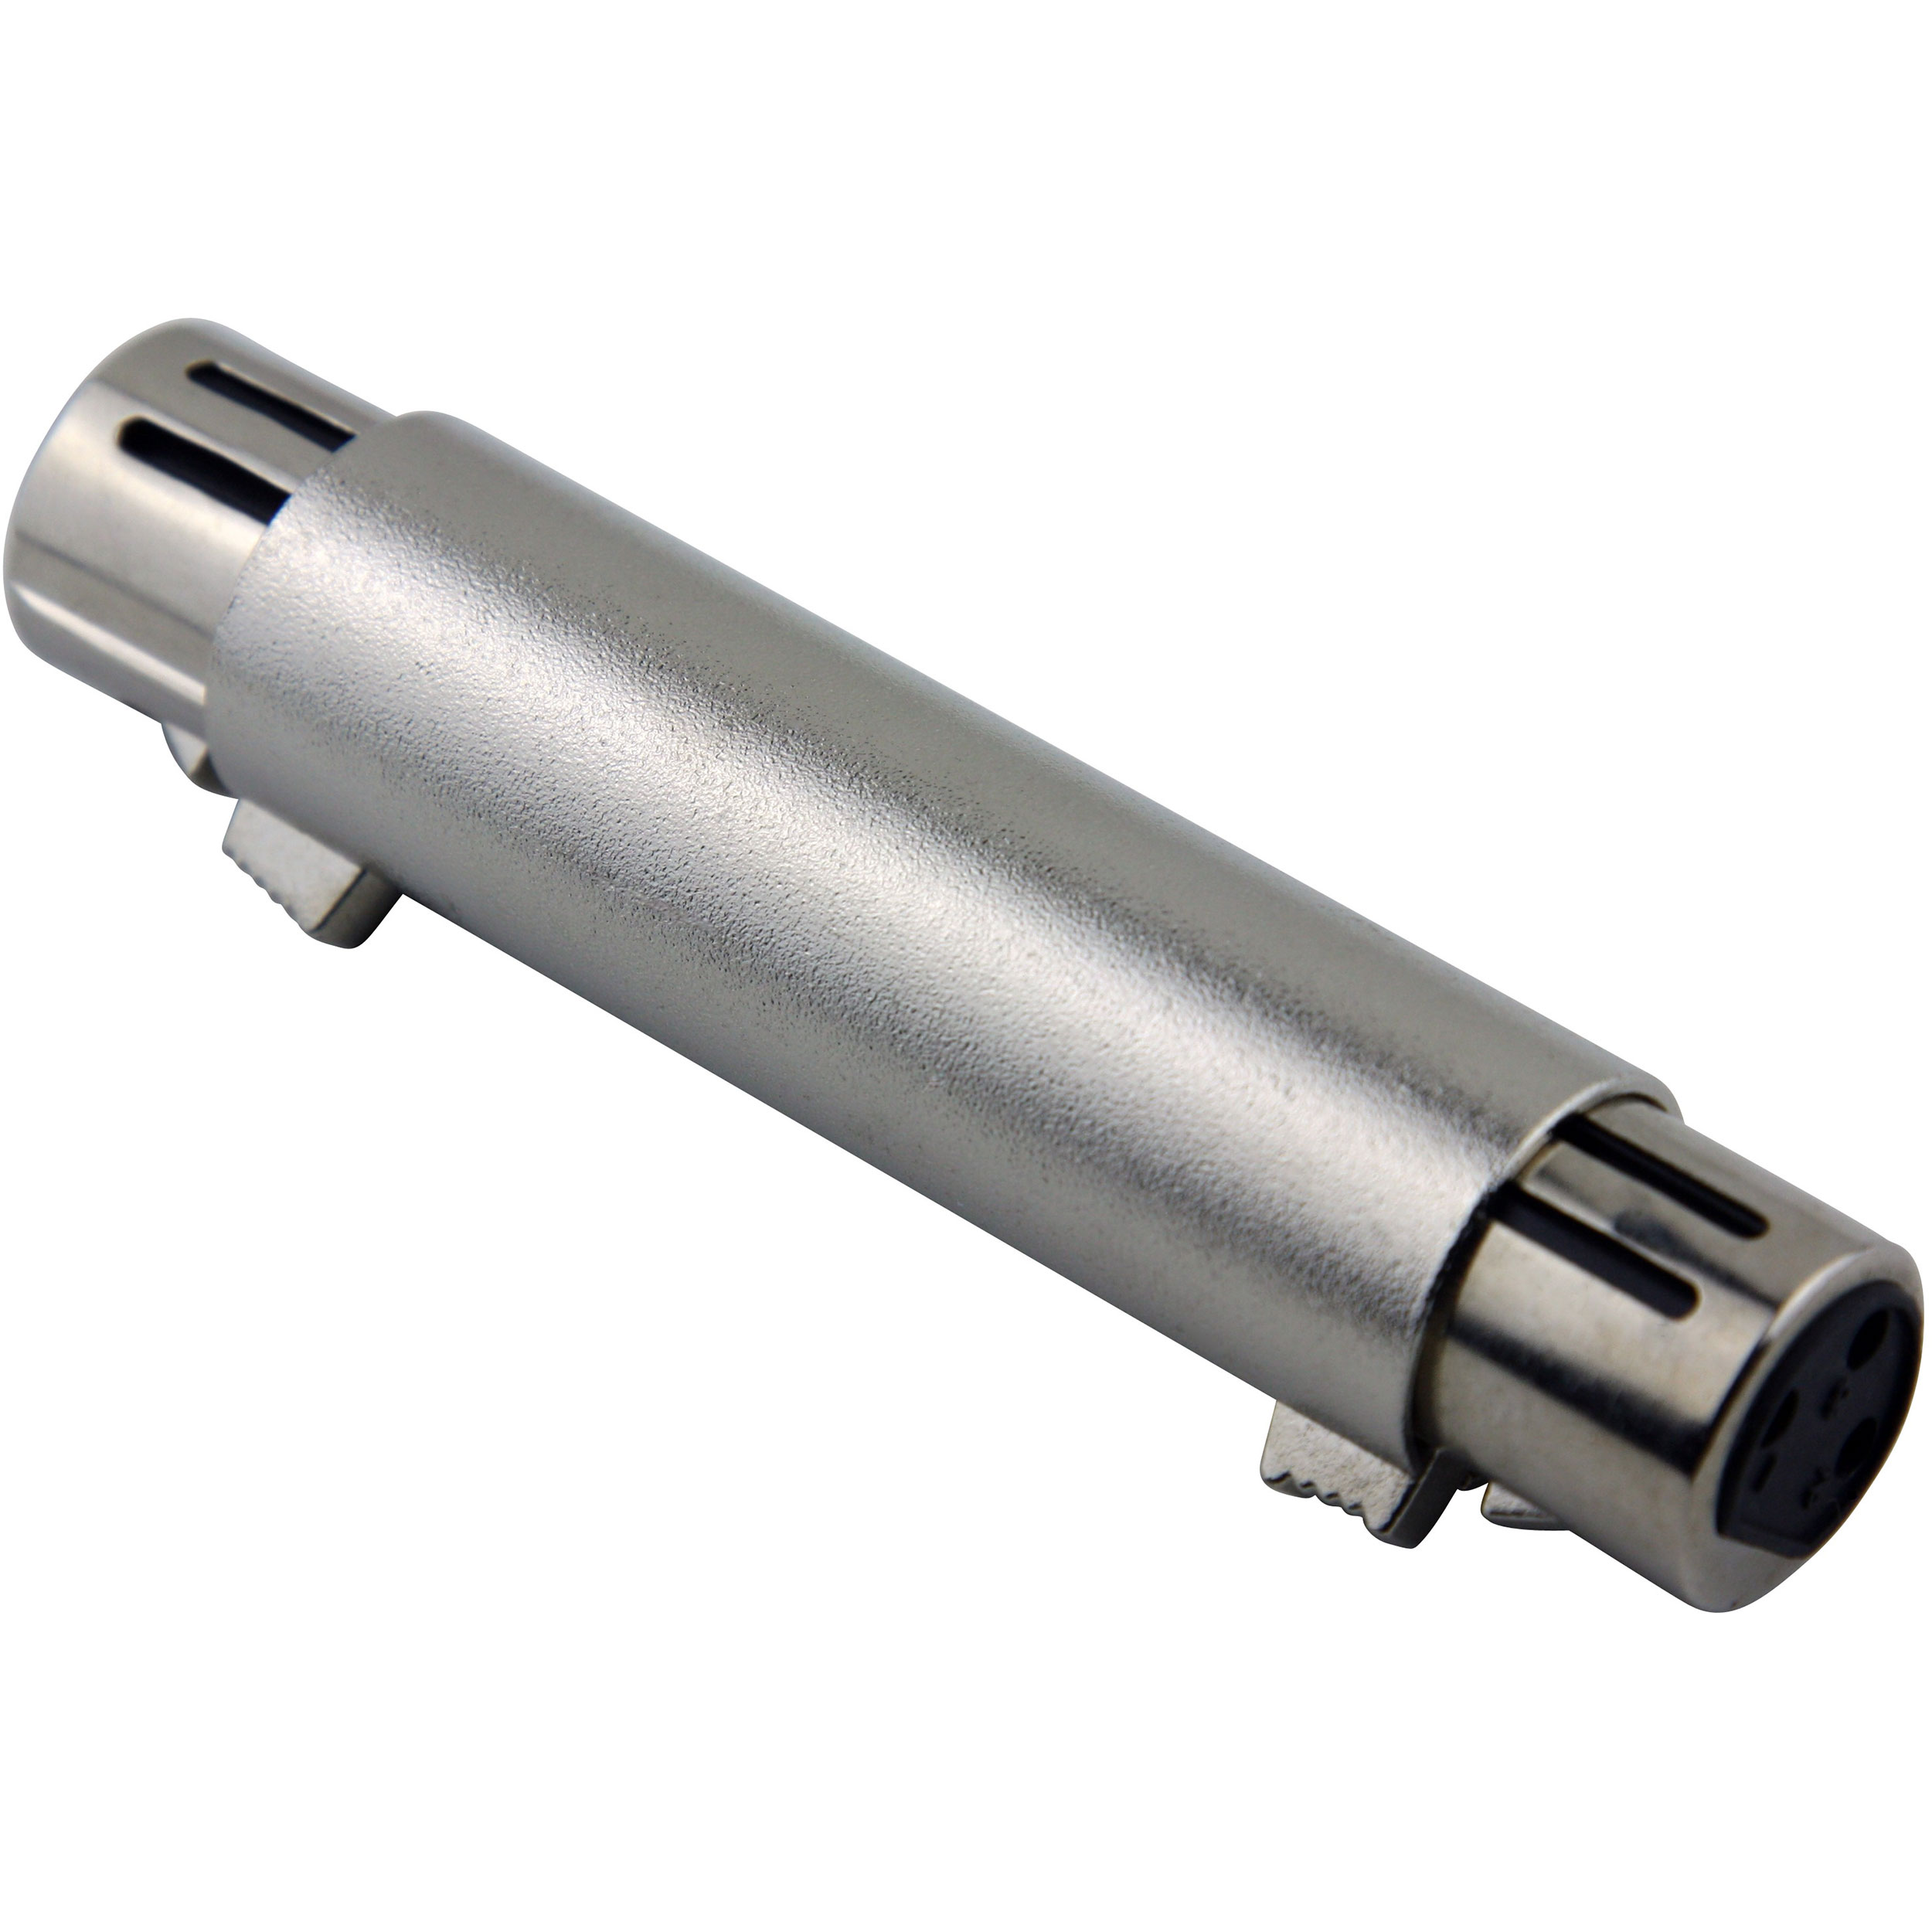 Pig Hog Solutions Female XLR to Female XLR Balanced Adapter